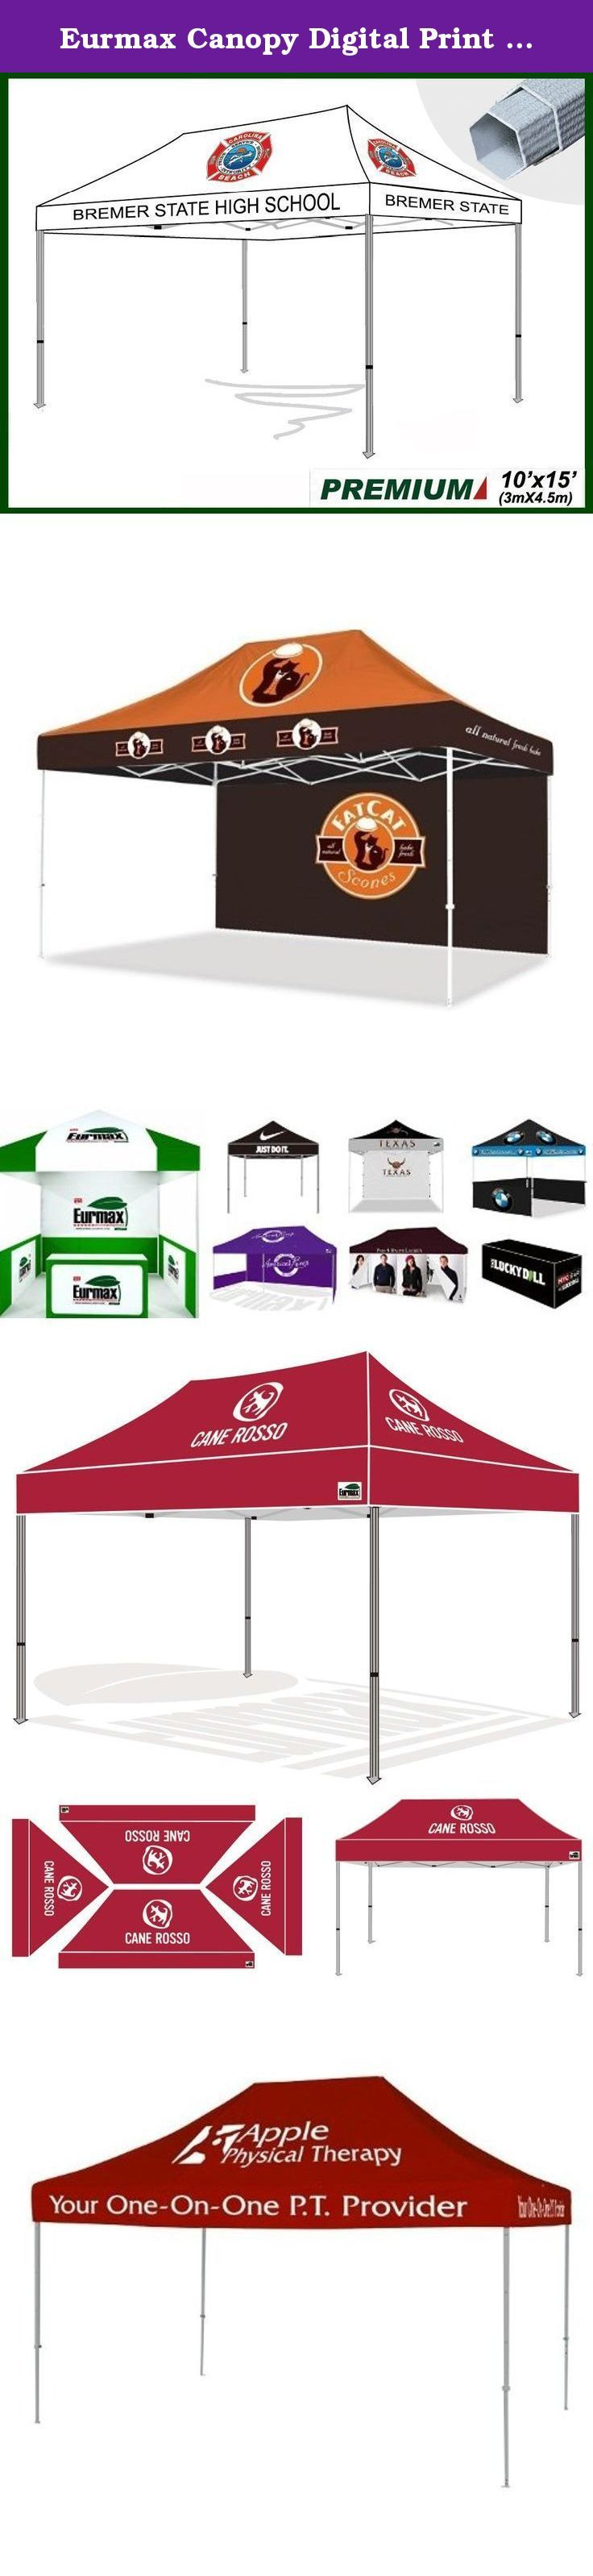 Eurmax Canopy Digital Print Custom Canopy Ez Pop Up Commercial Canopy Fair Tent (10x15). What you need to do is just email us your logo files and tell us how you want your canopy looks like, We will make Free rendition in 48 hours for your proof.